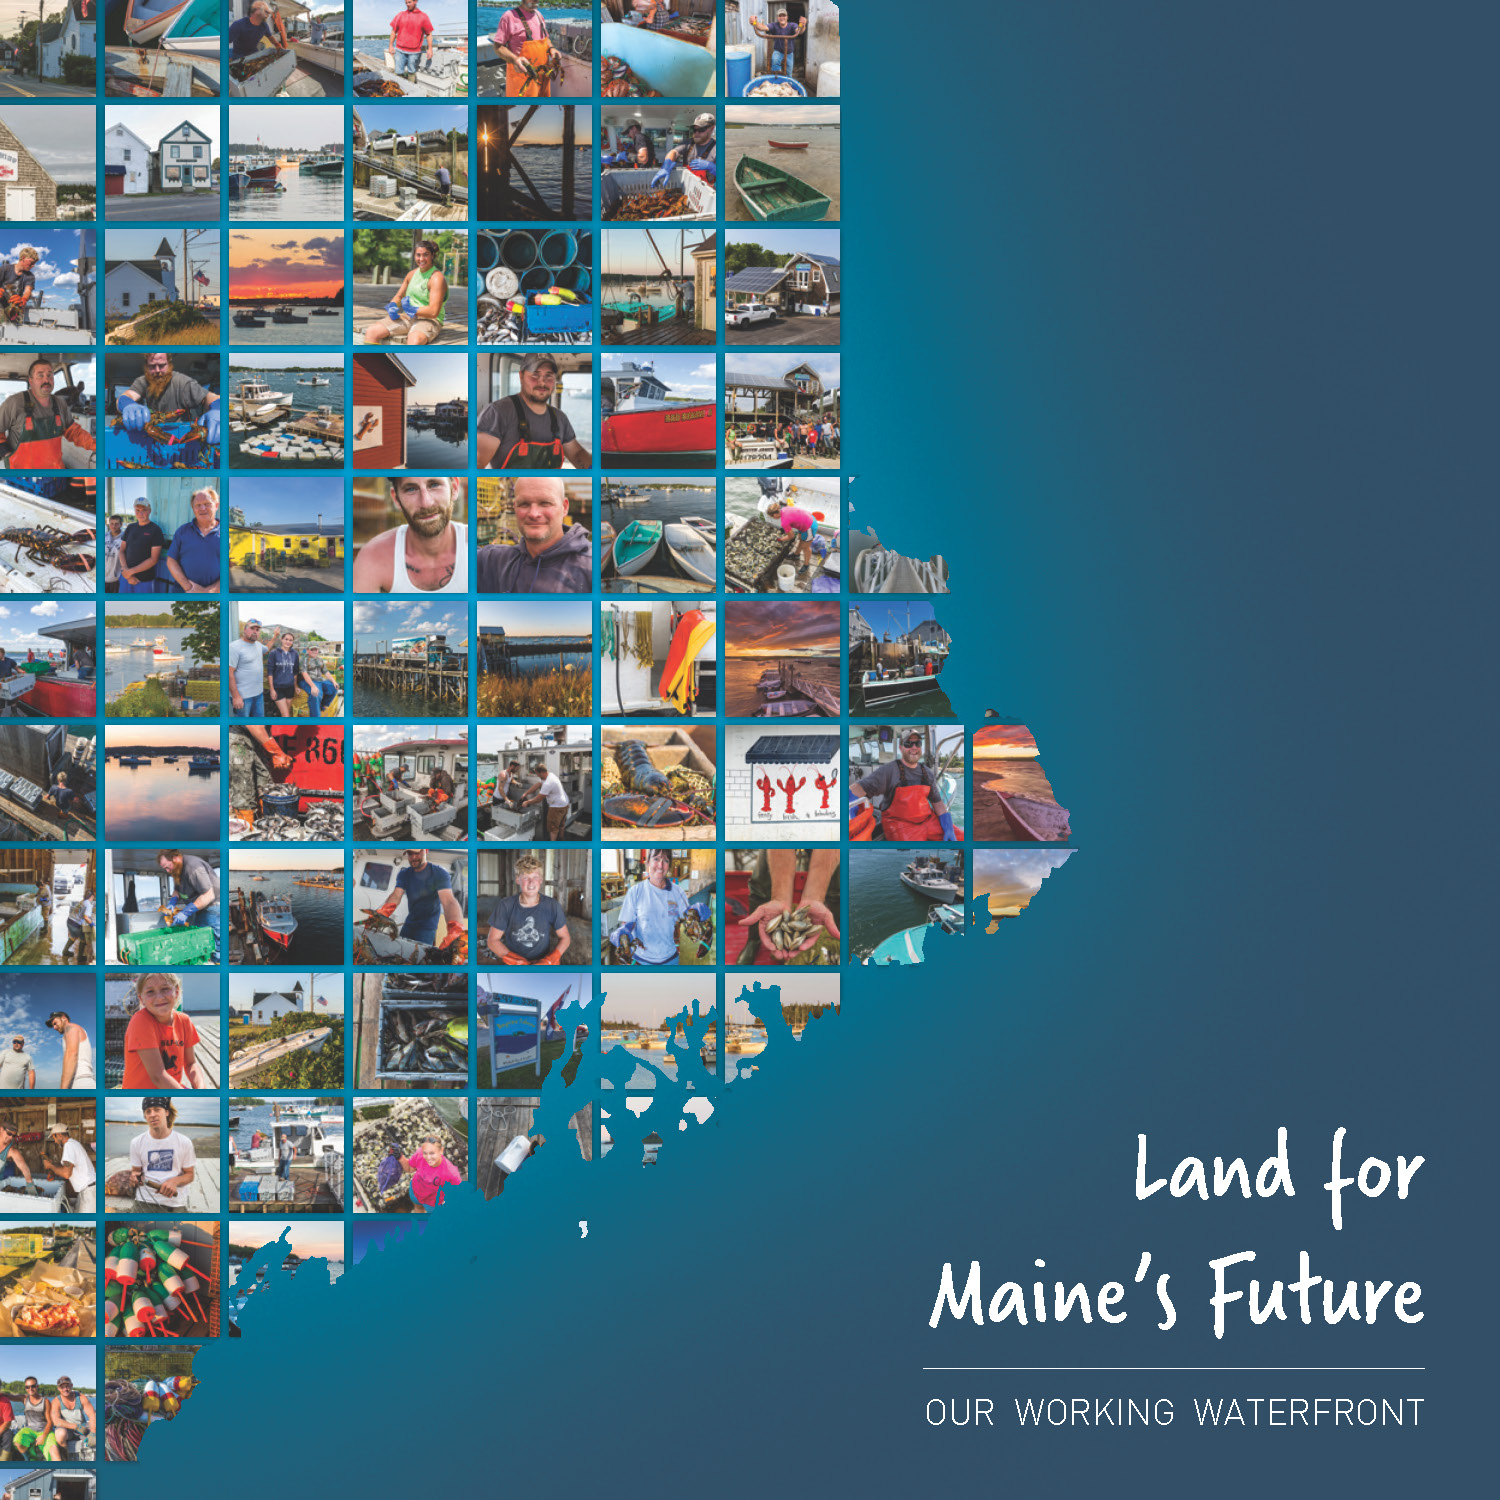 MCP-029-Land-for-Maine_s-Future-demo-pages_Page_01